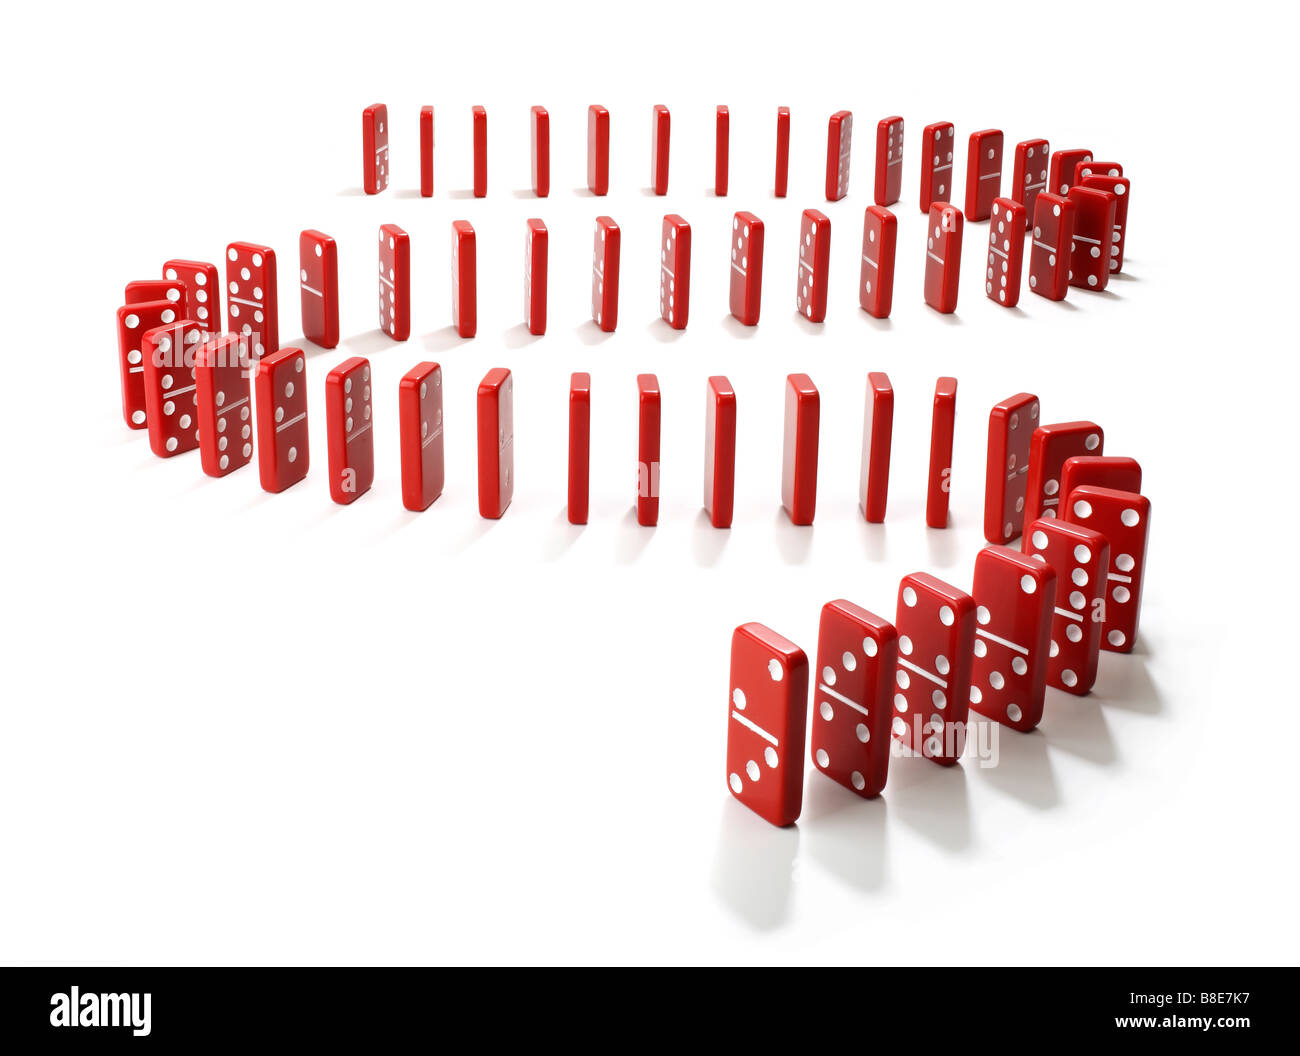 Studio shot of a row of red Domino's lined up - Stock Image